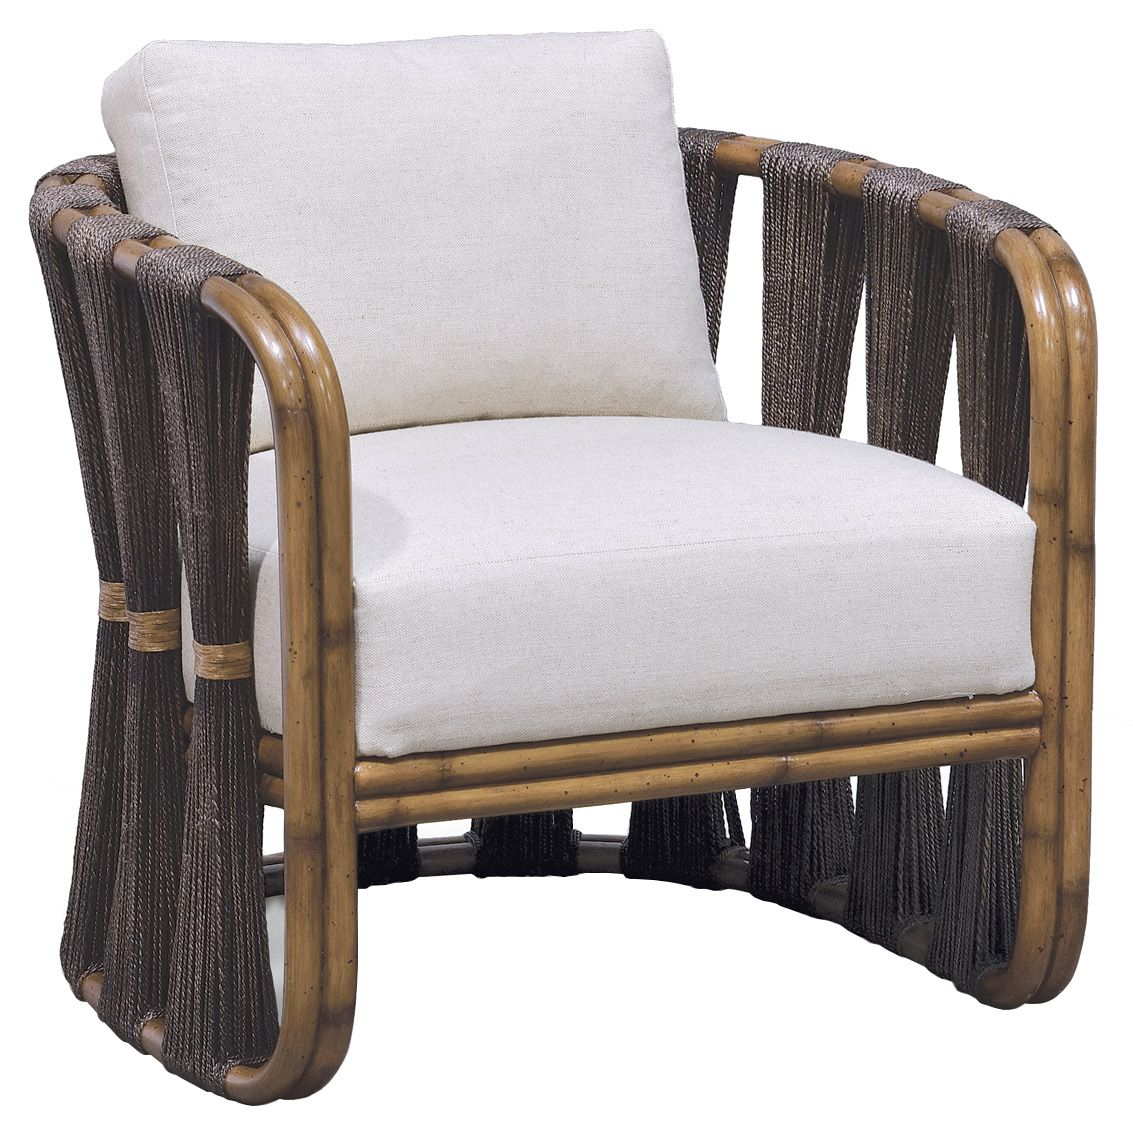 Palecek Strings Attached Dark Lounge Chair @Zinc_Door